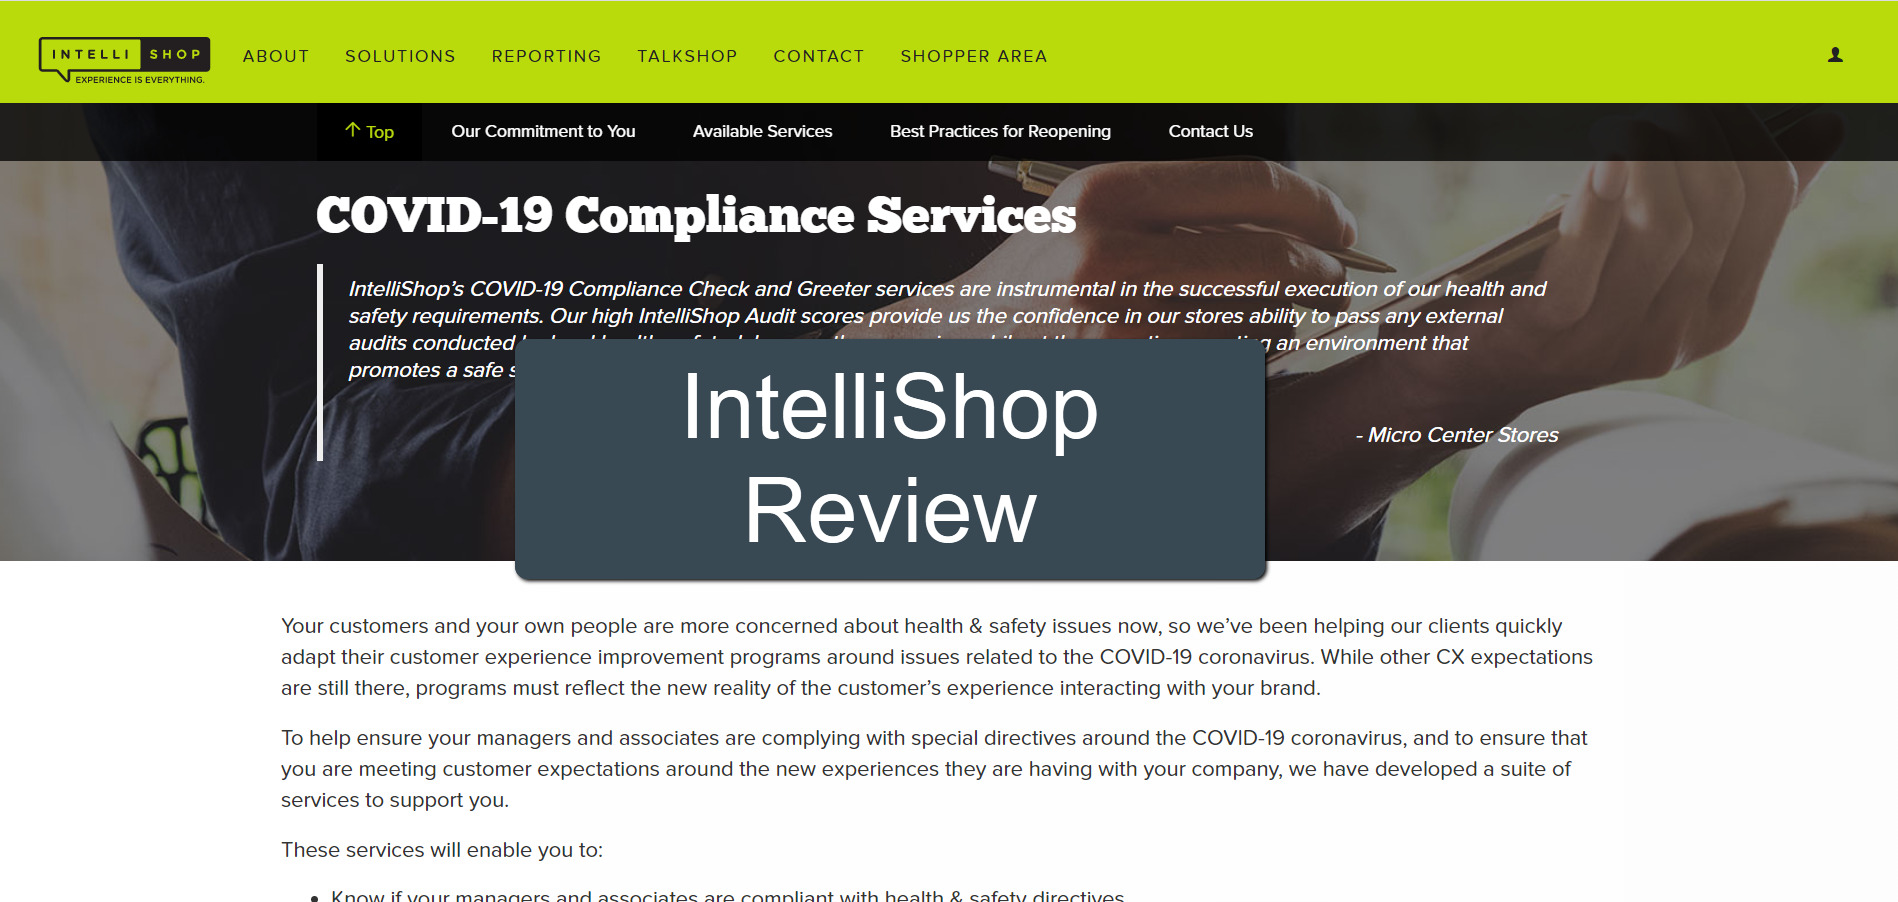 IntelliShop review - featured